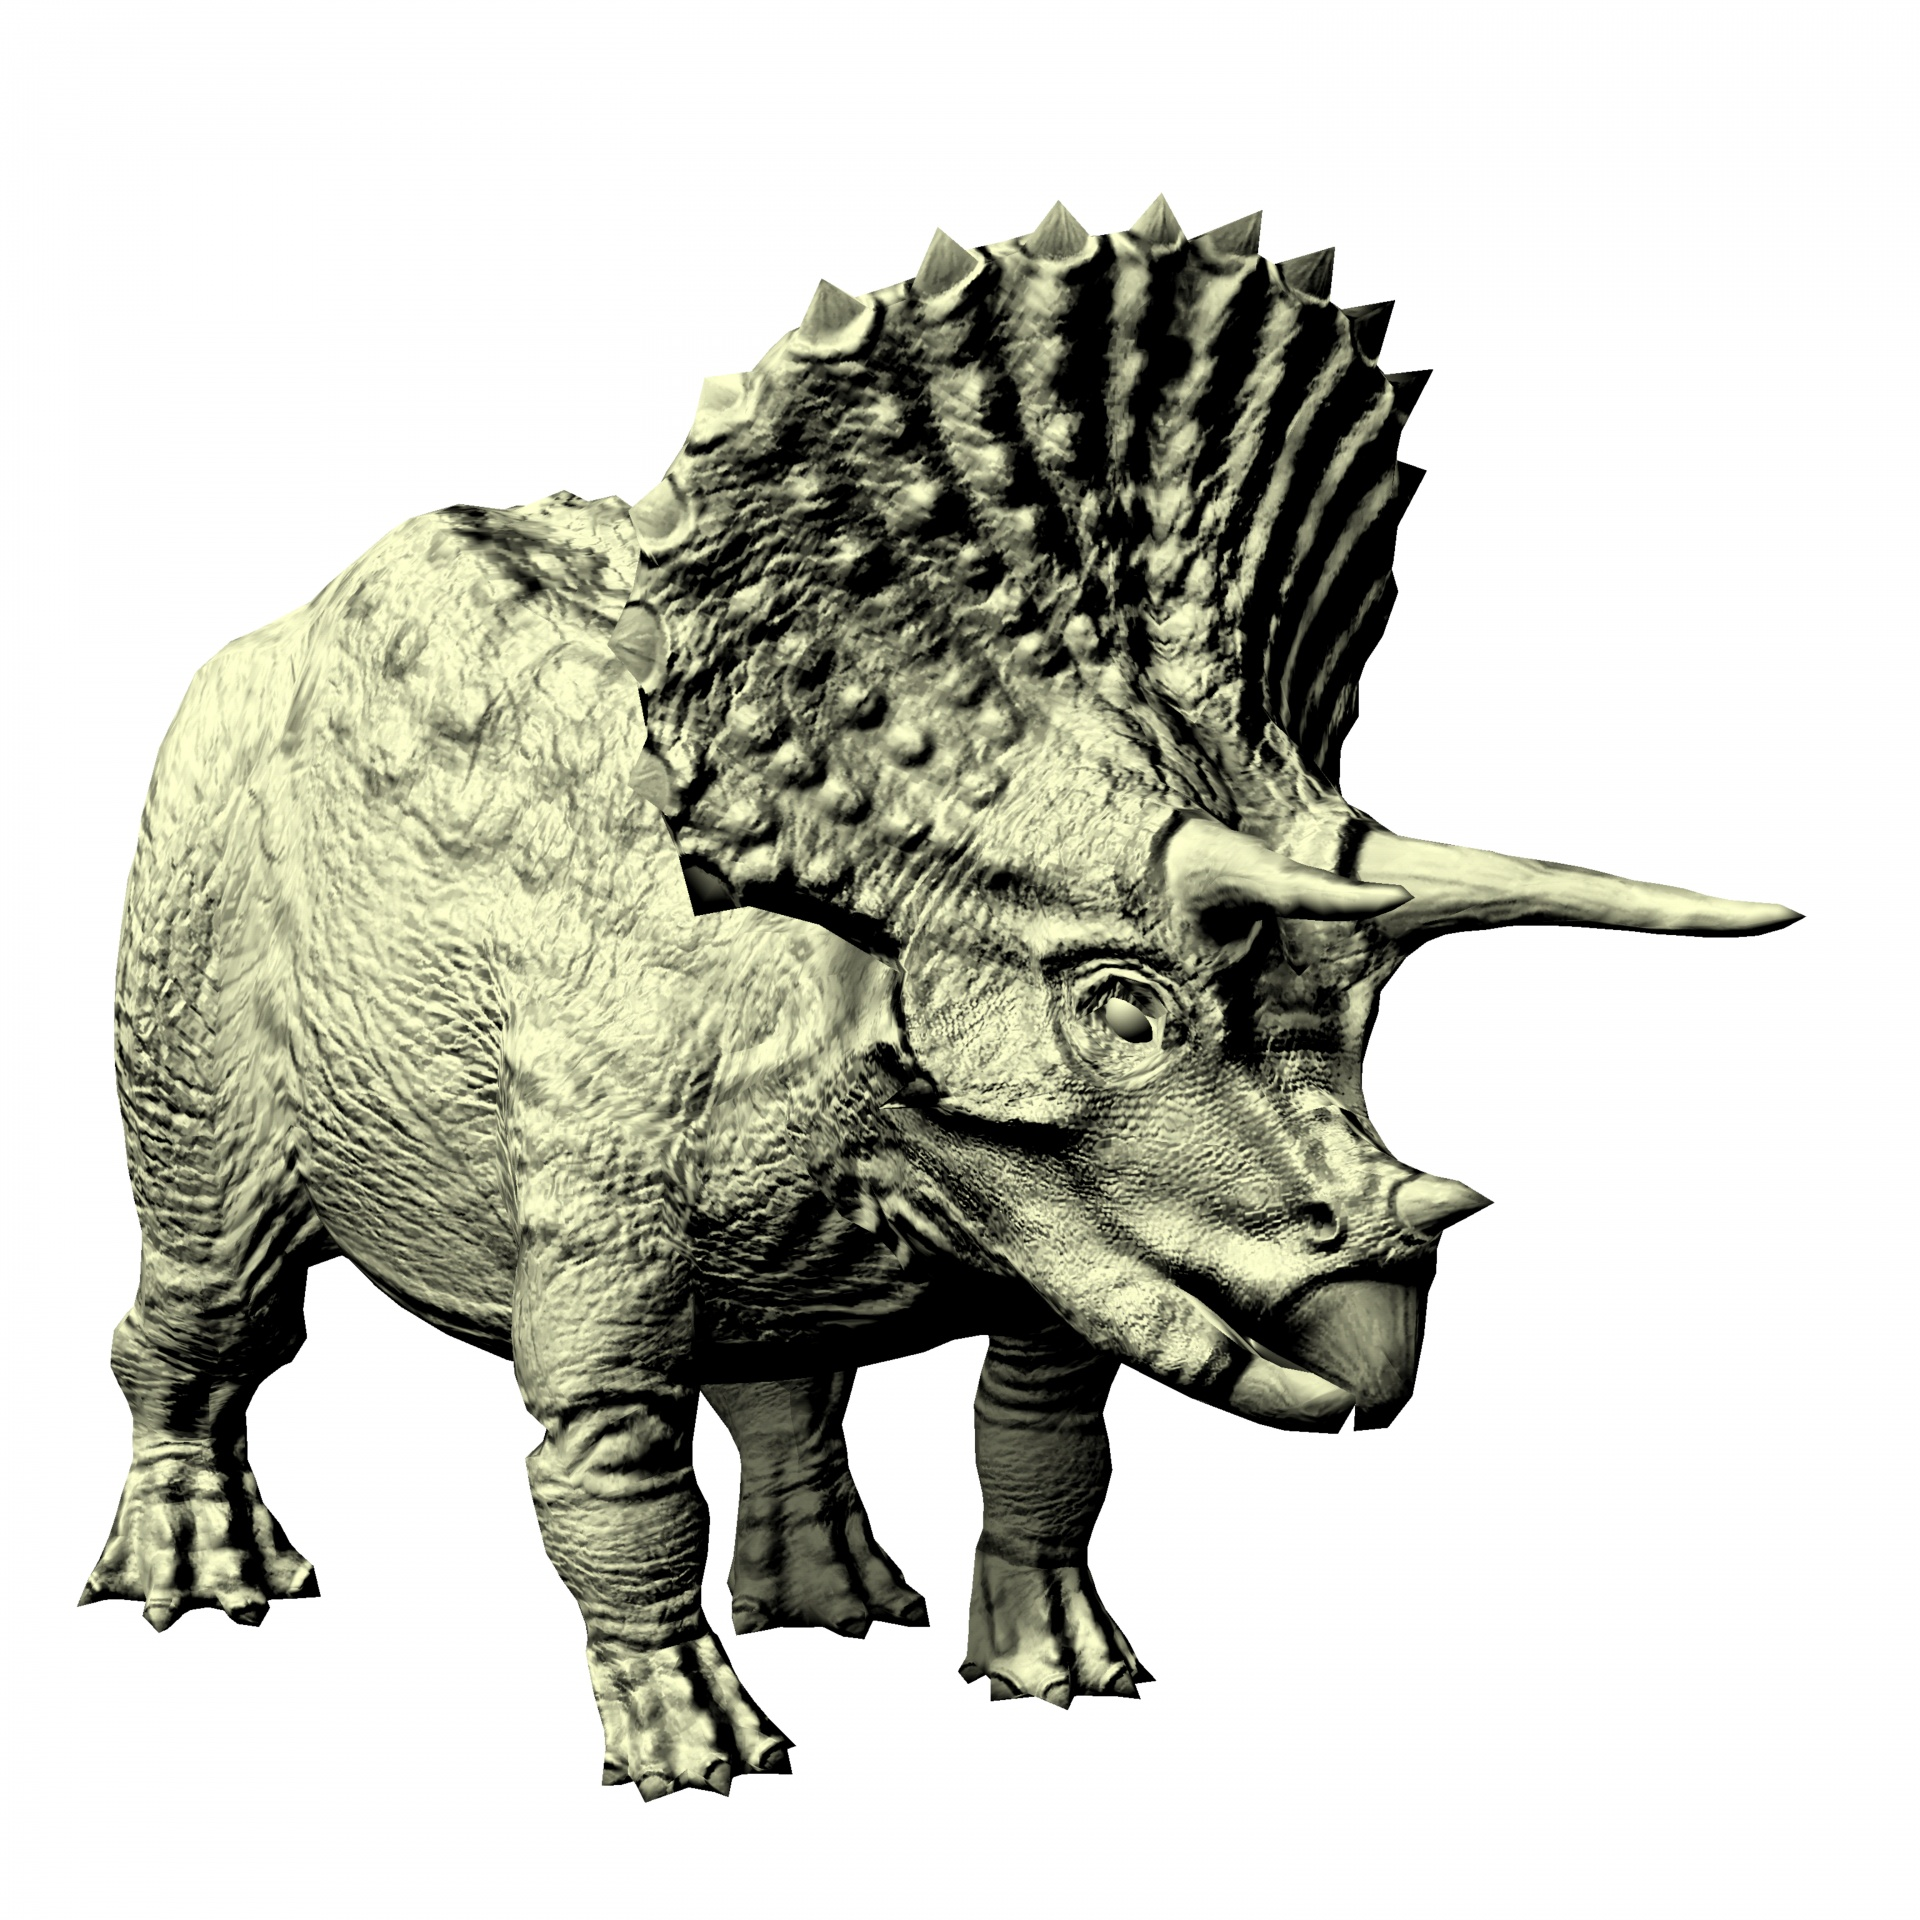 Scientists Unearth HUGE Adult Triceratops Skeleton From Denver Construction Site–68 Million Years Old